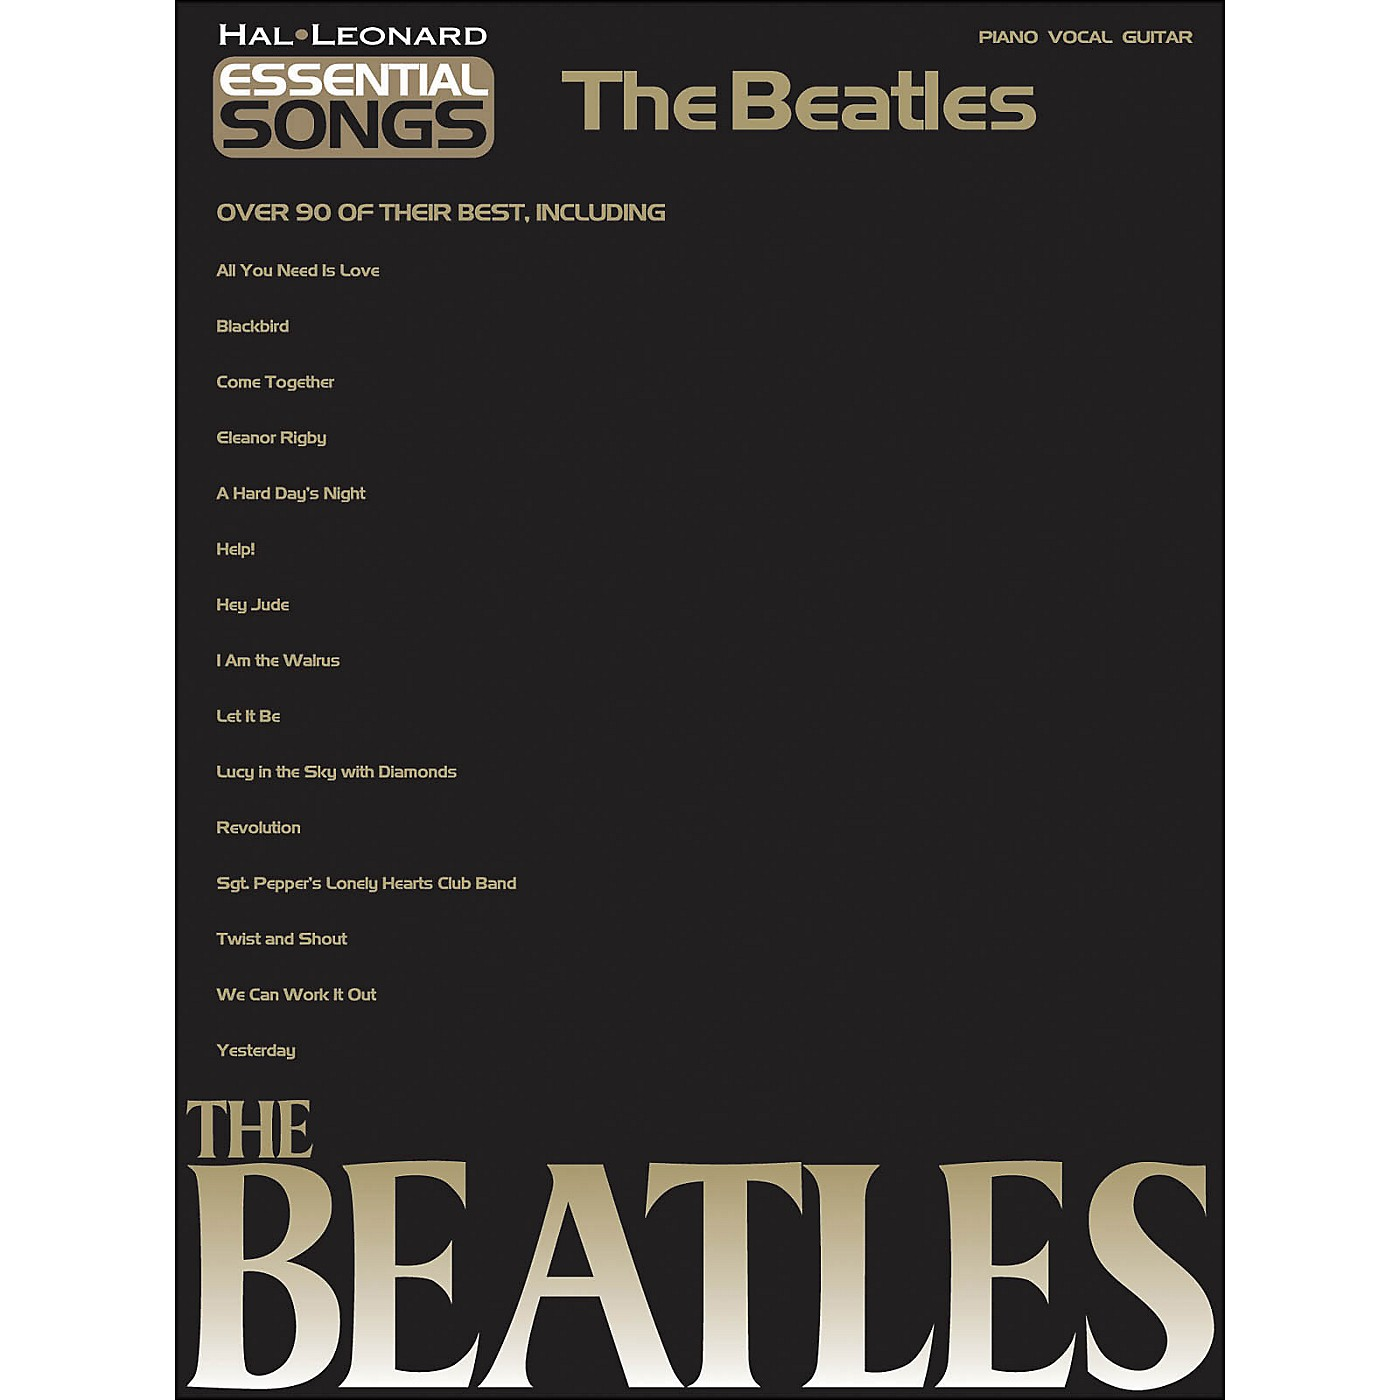 Hal Leonard Essential Songs The Beatles arranged for piano, vocal, and guitar (P/V/G) thumbnail